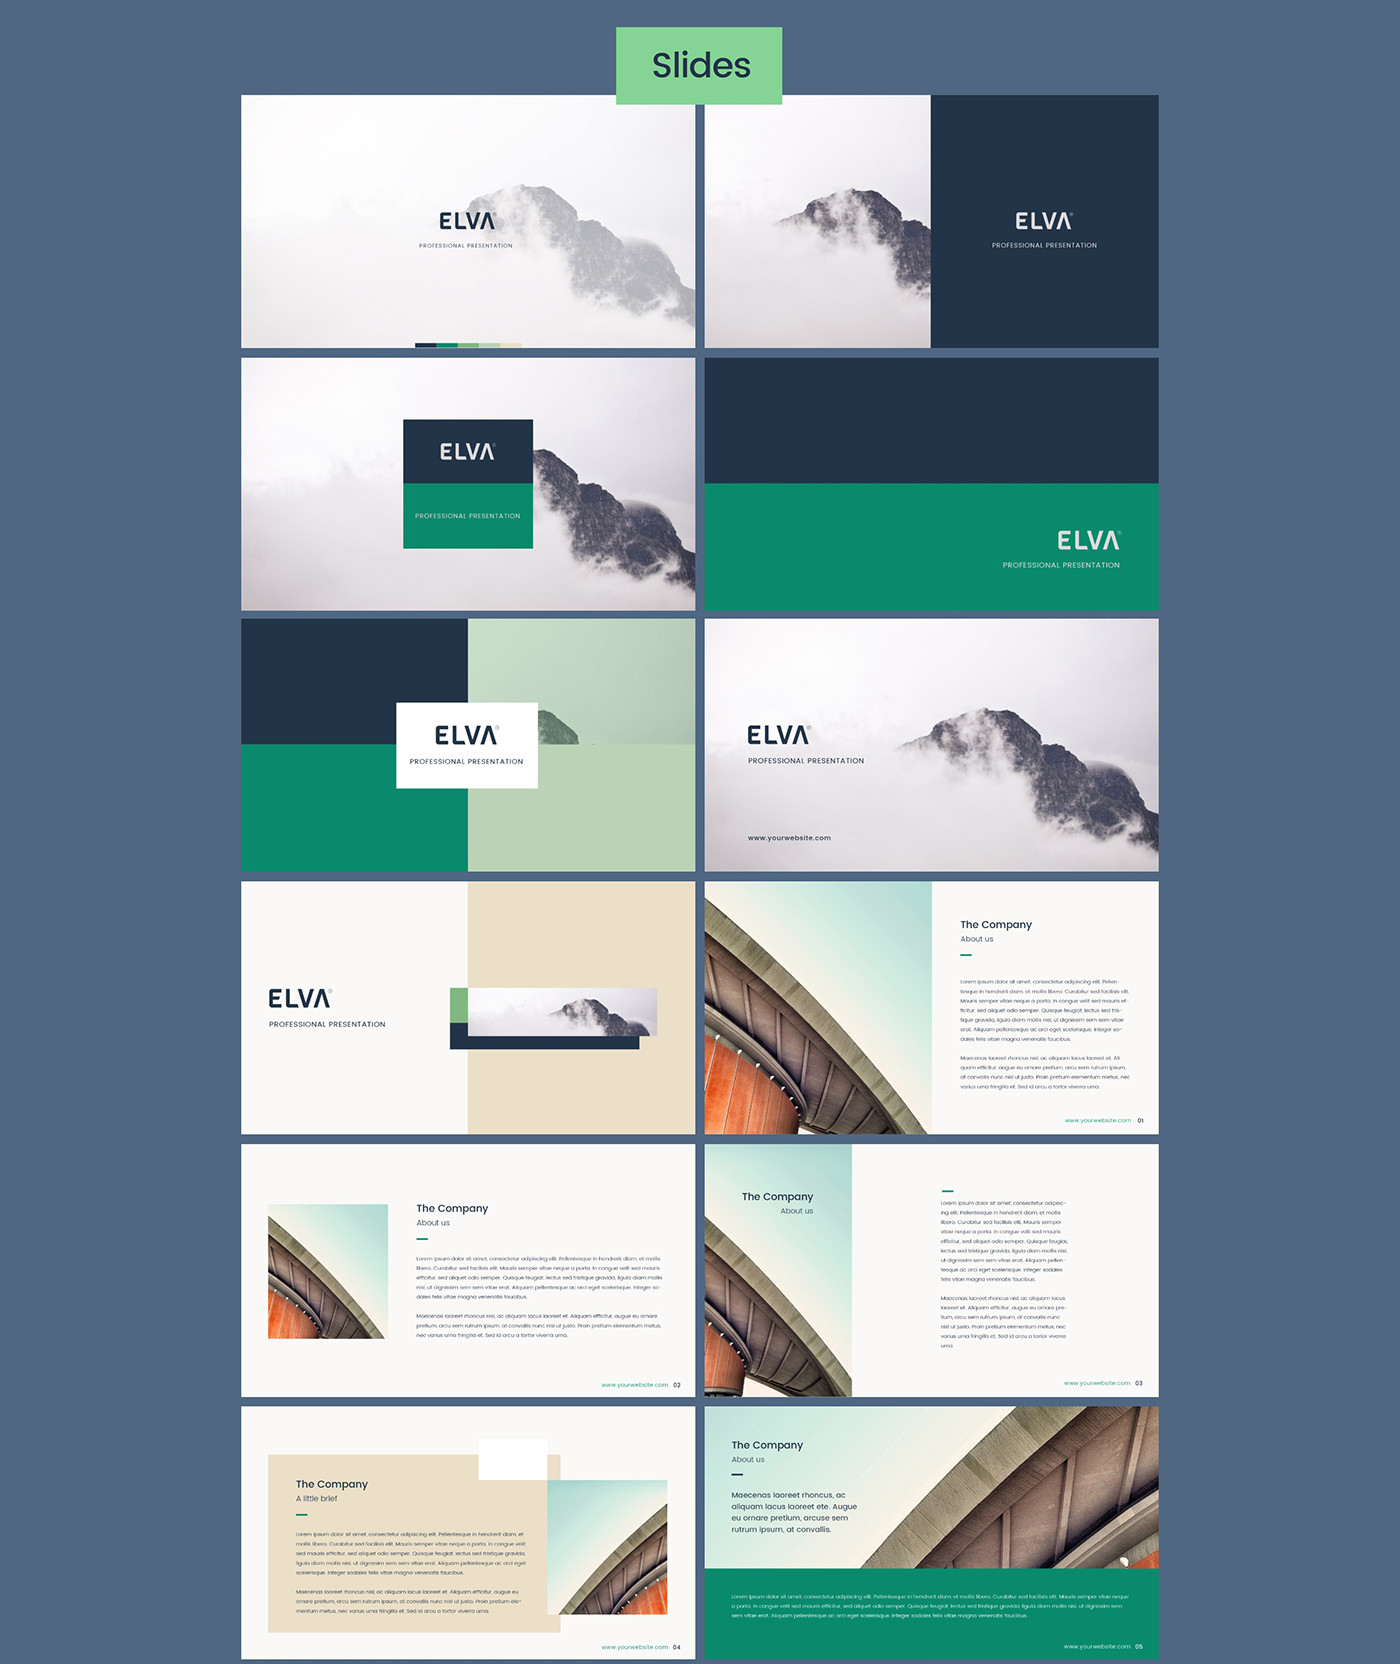 Powerpoint Slides Free Download: 21+ Powerpoint Presentation Templates